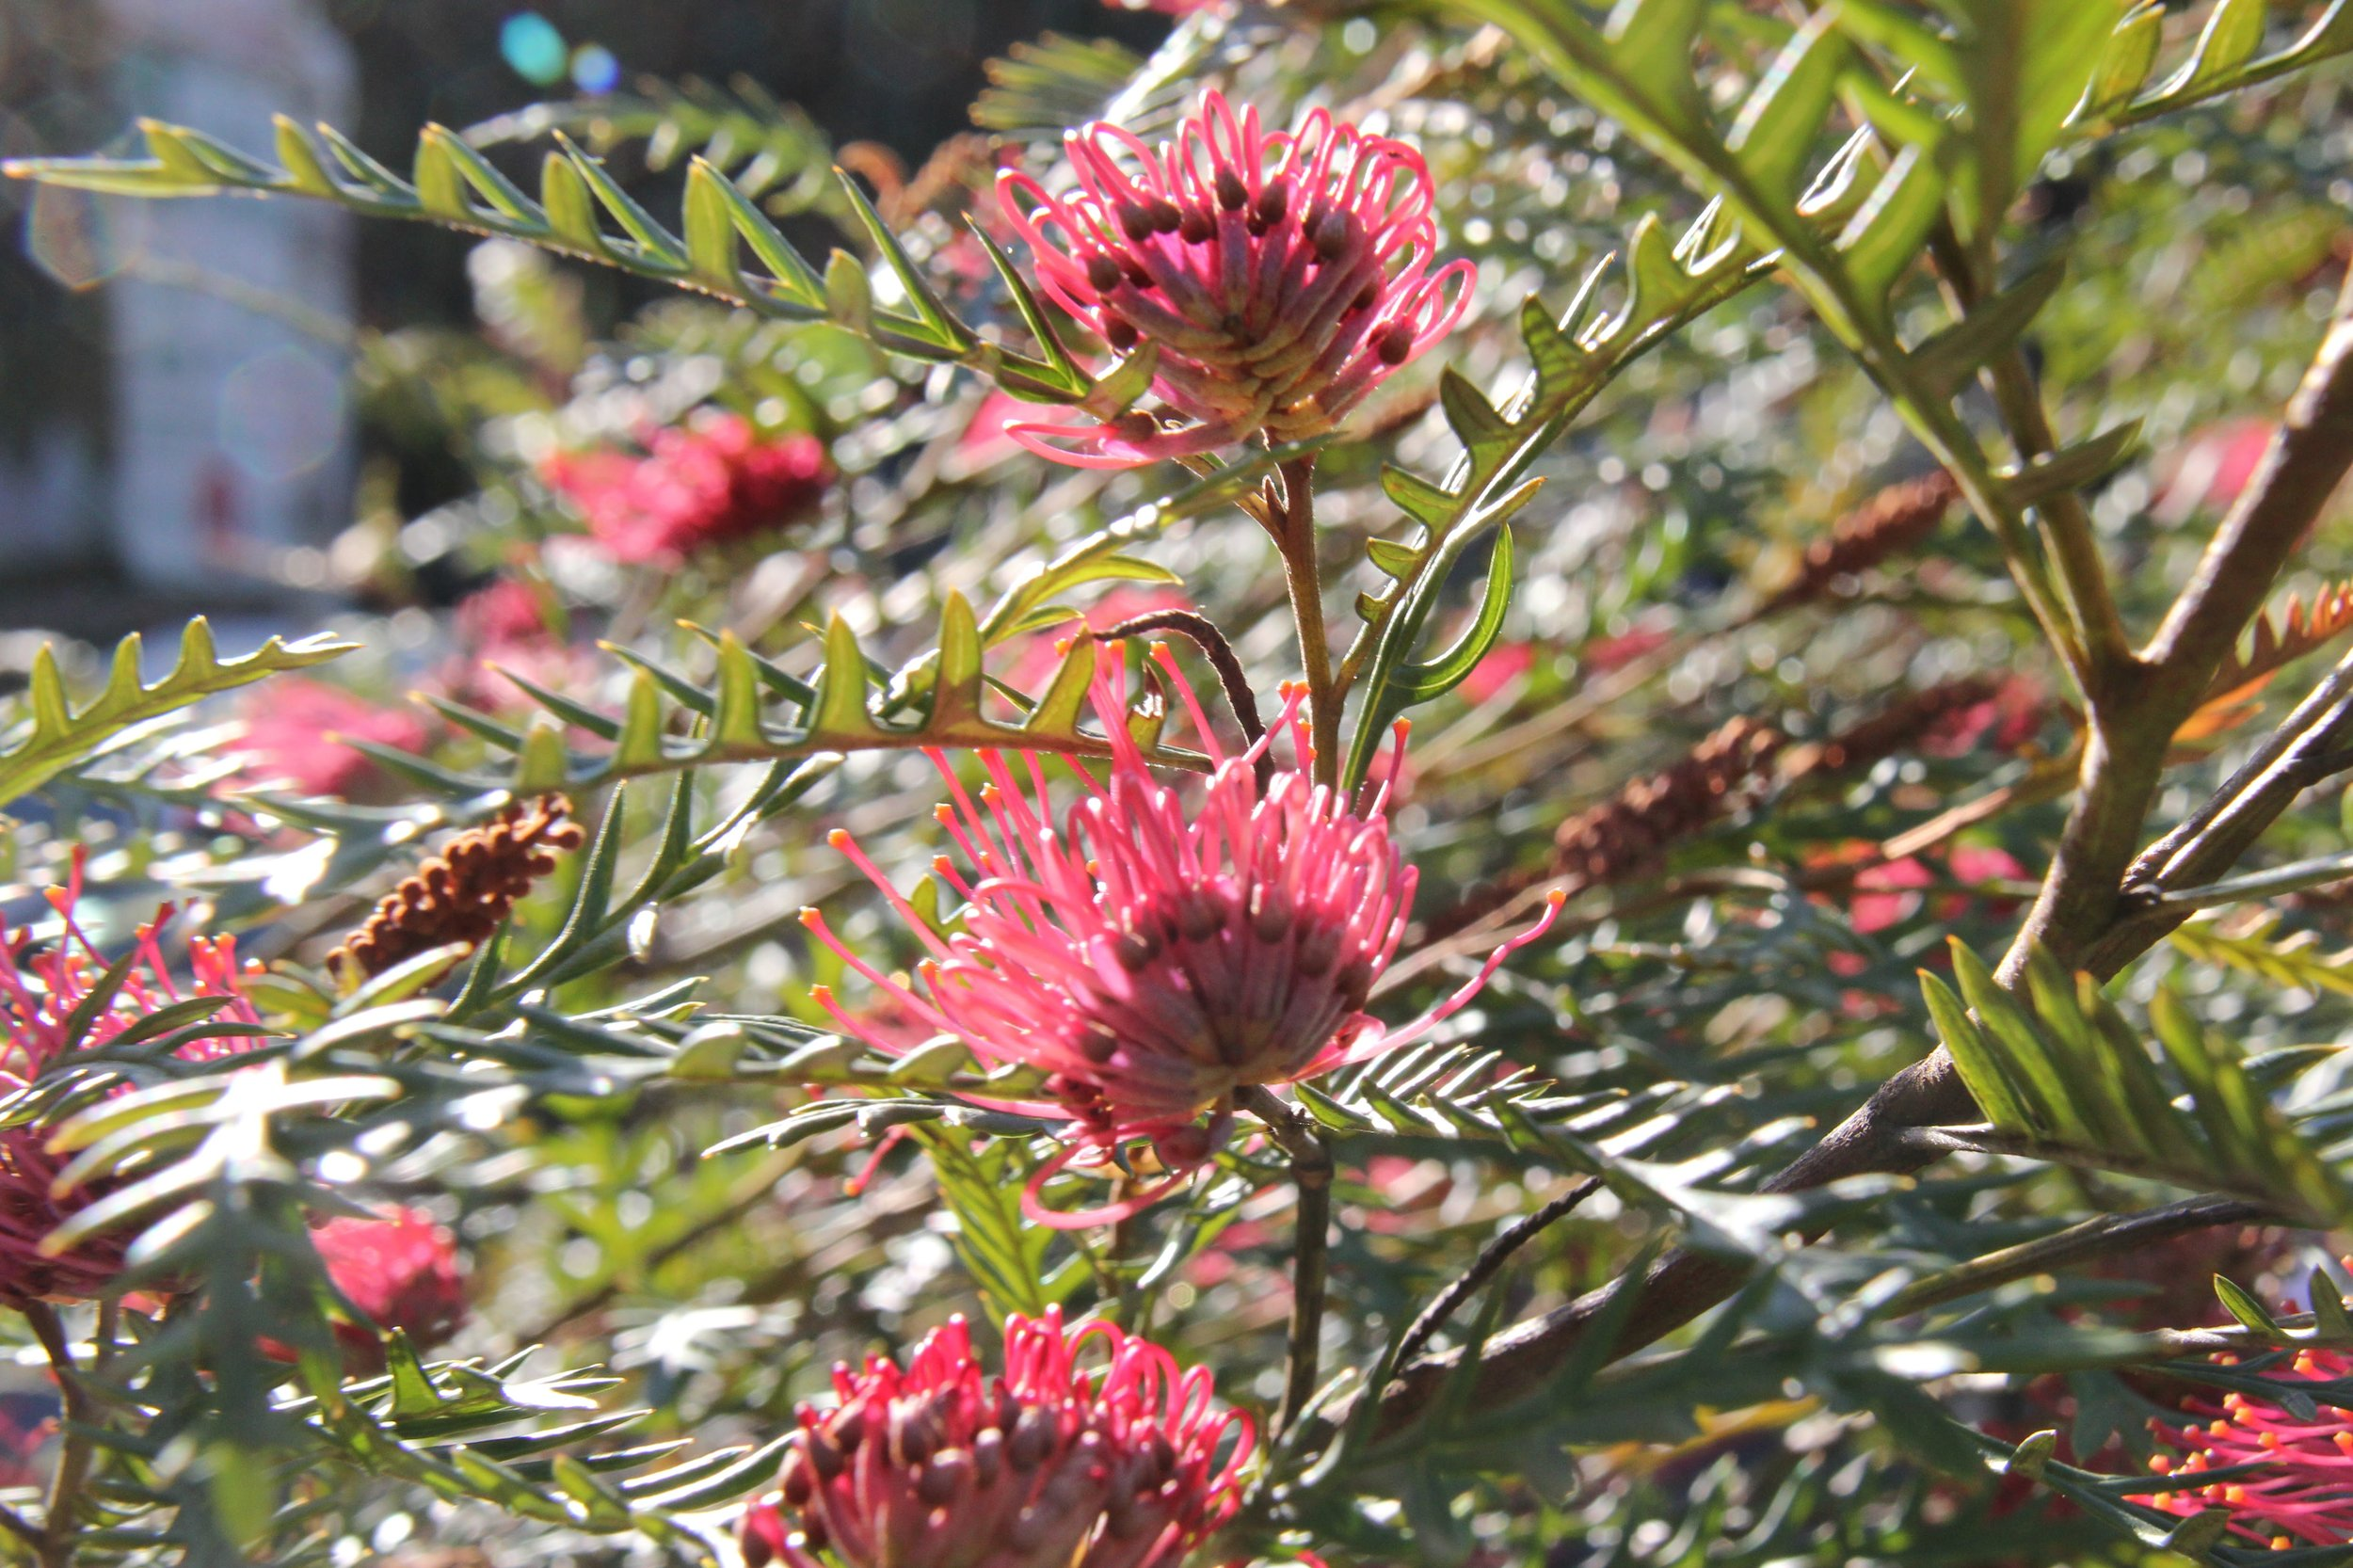 Grevillea  'Ivanhoe' in bloom.